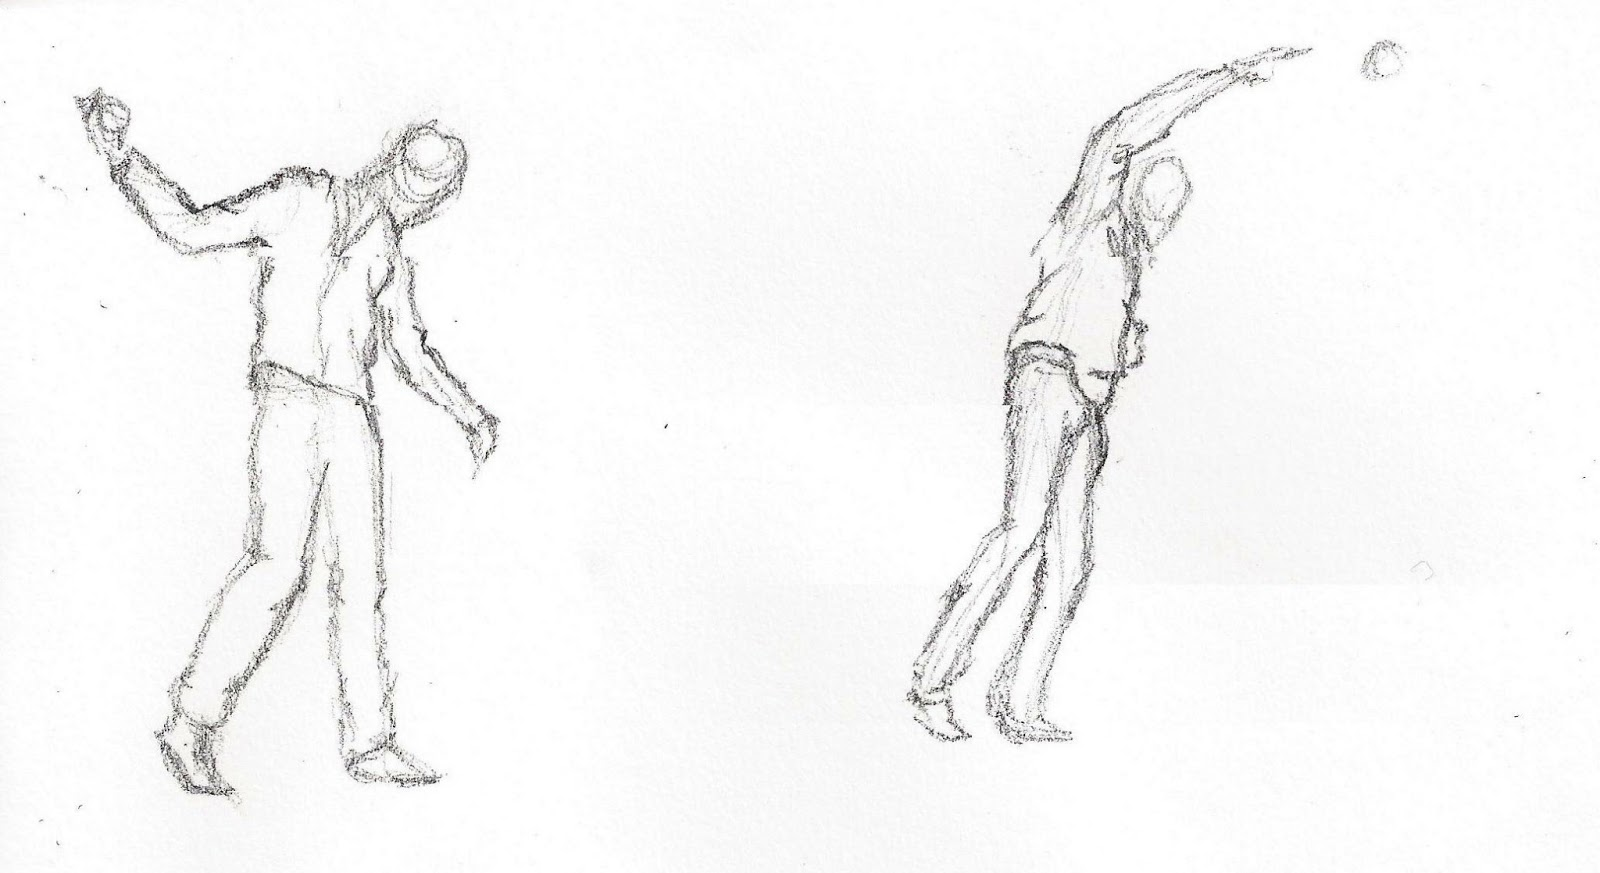 Drawings: Sequence drawings (3)